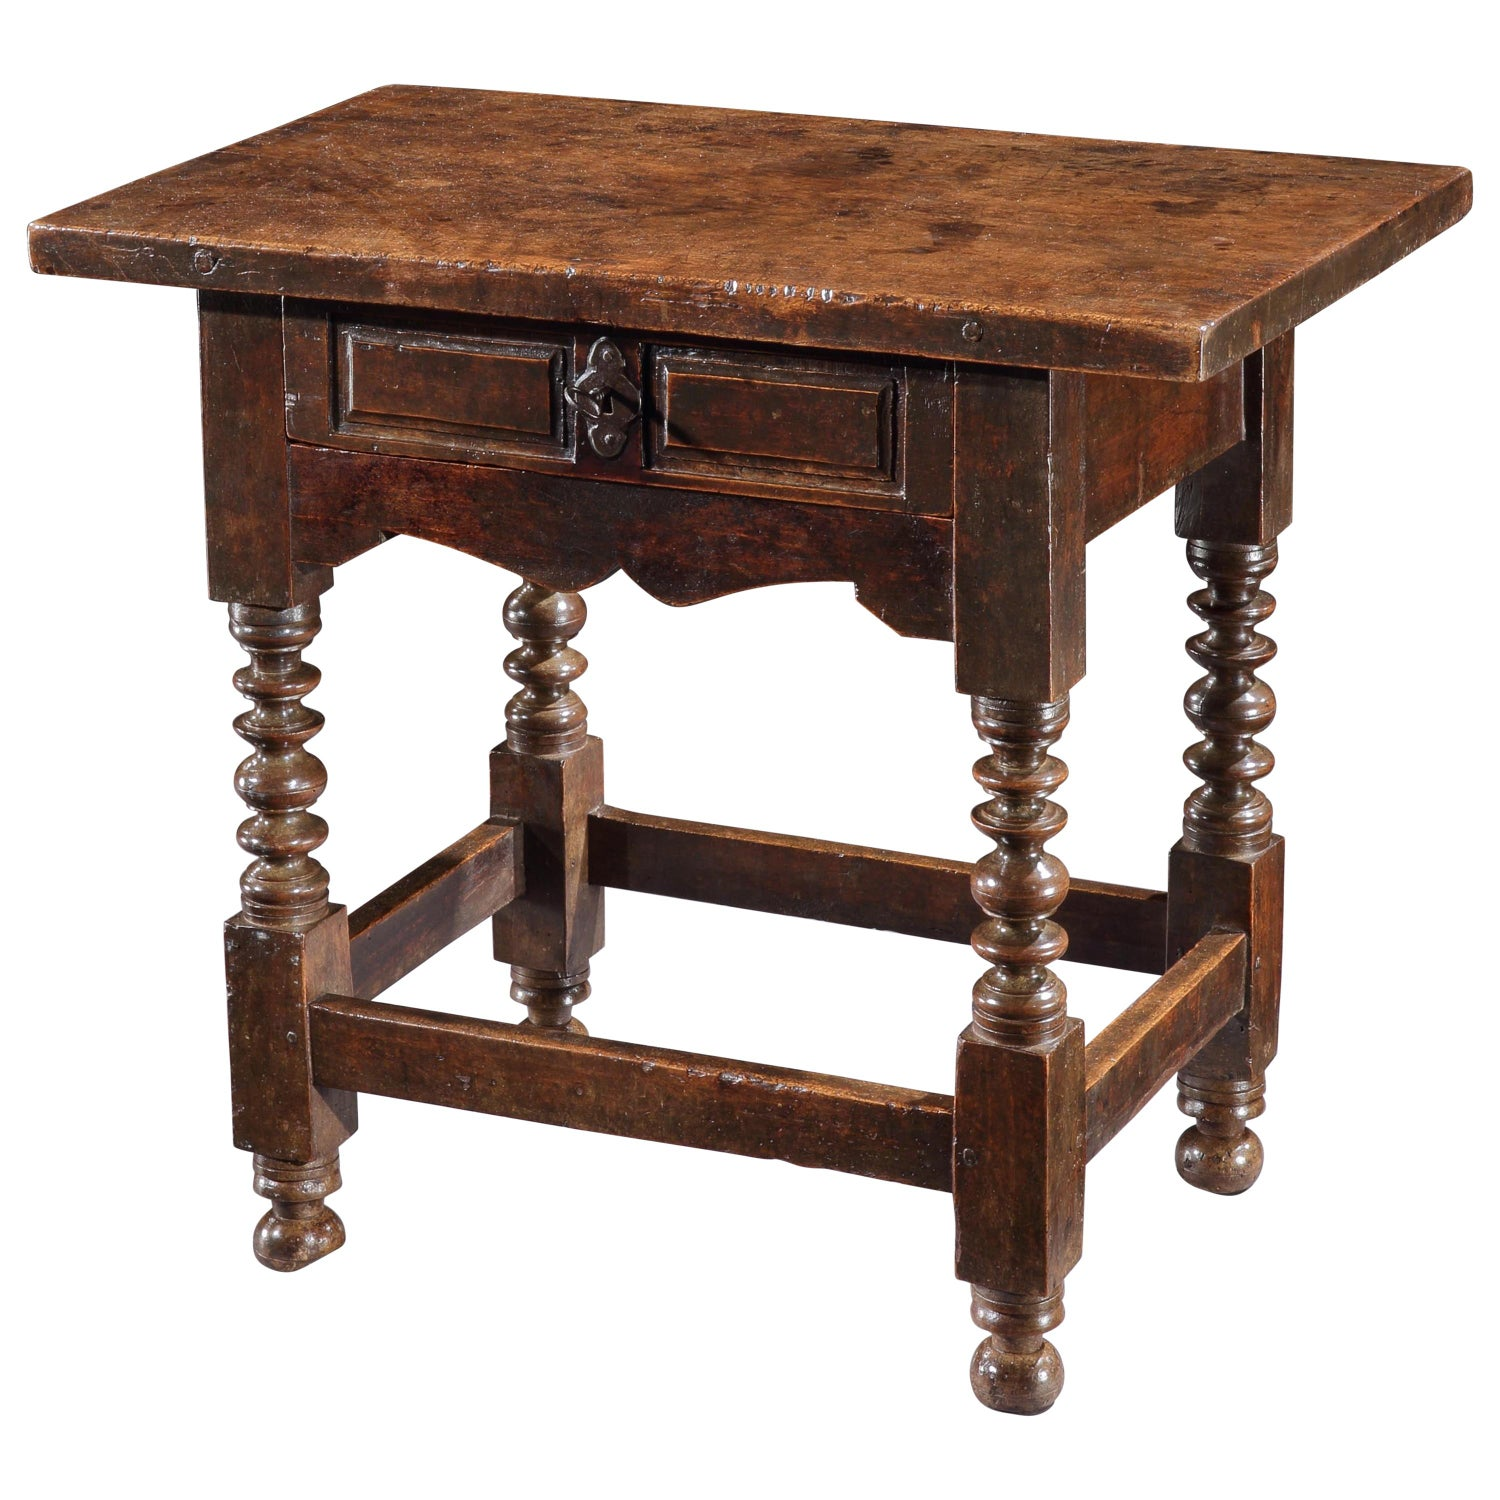 Table, Sidetable, Walnut, Spanish, Baroque, Ironwork, 1 1/2 Inch Thick Top